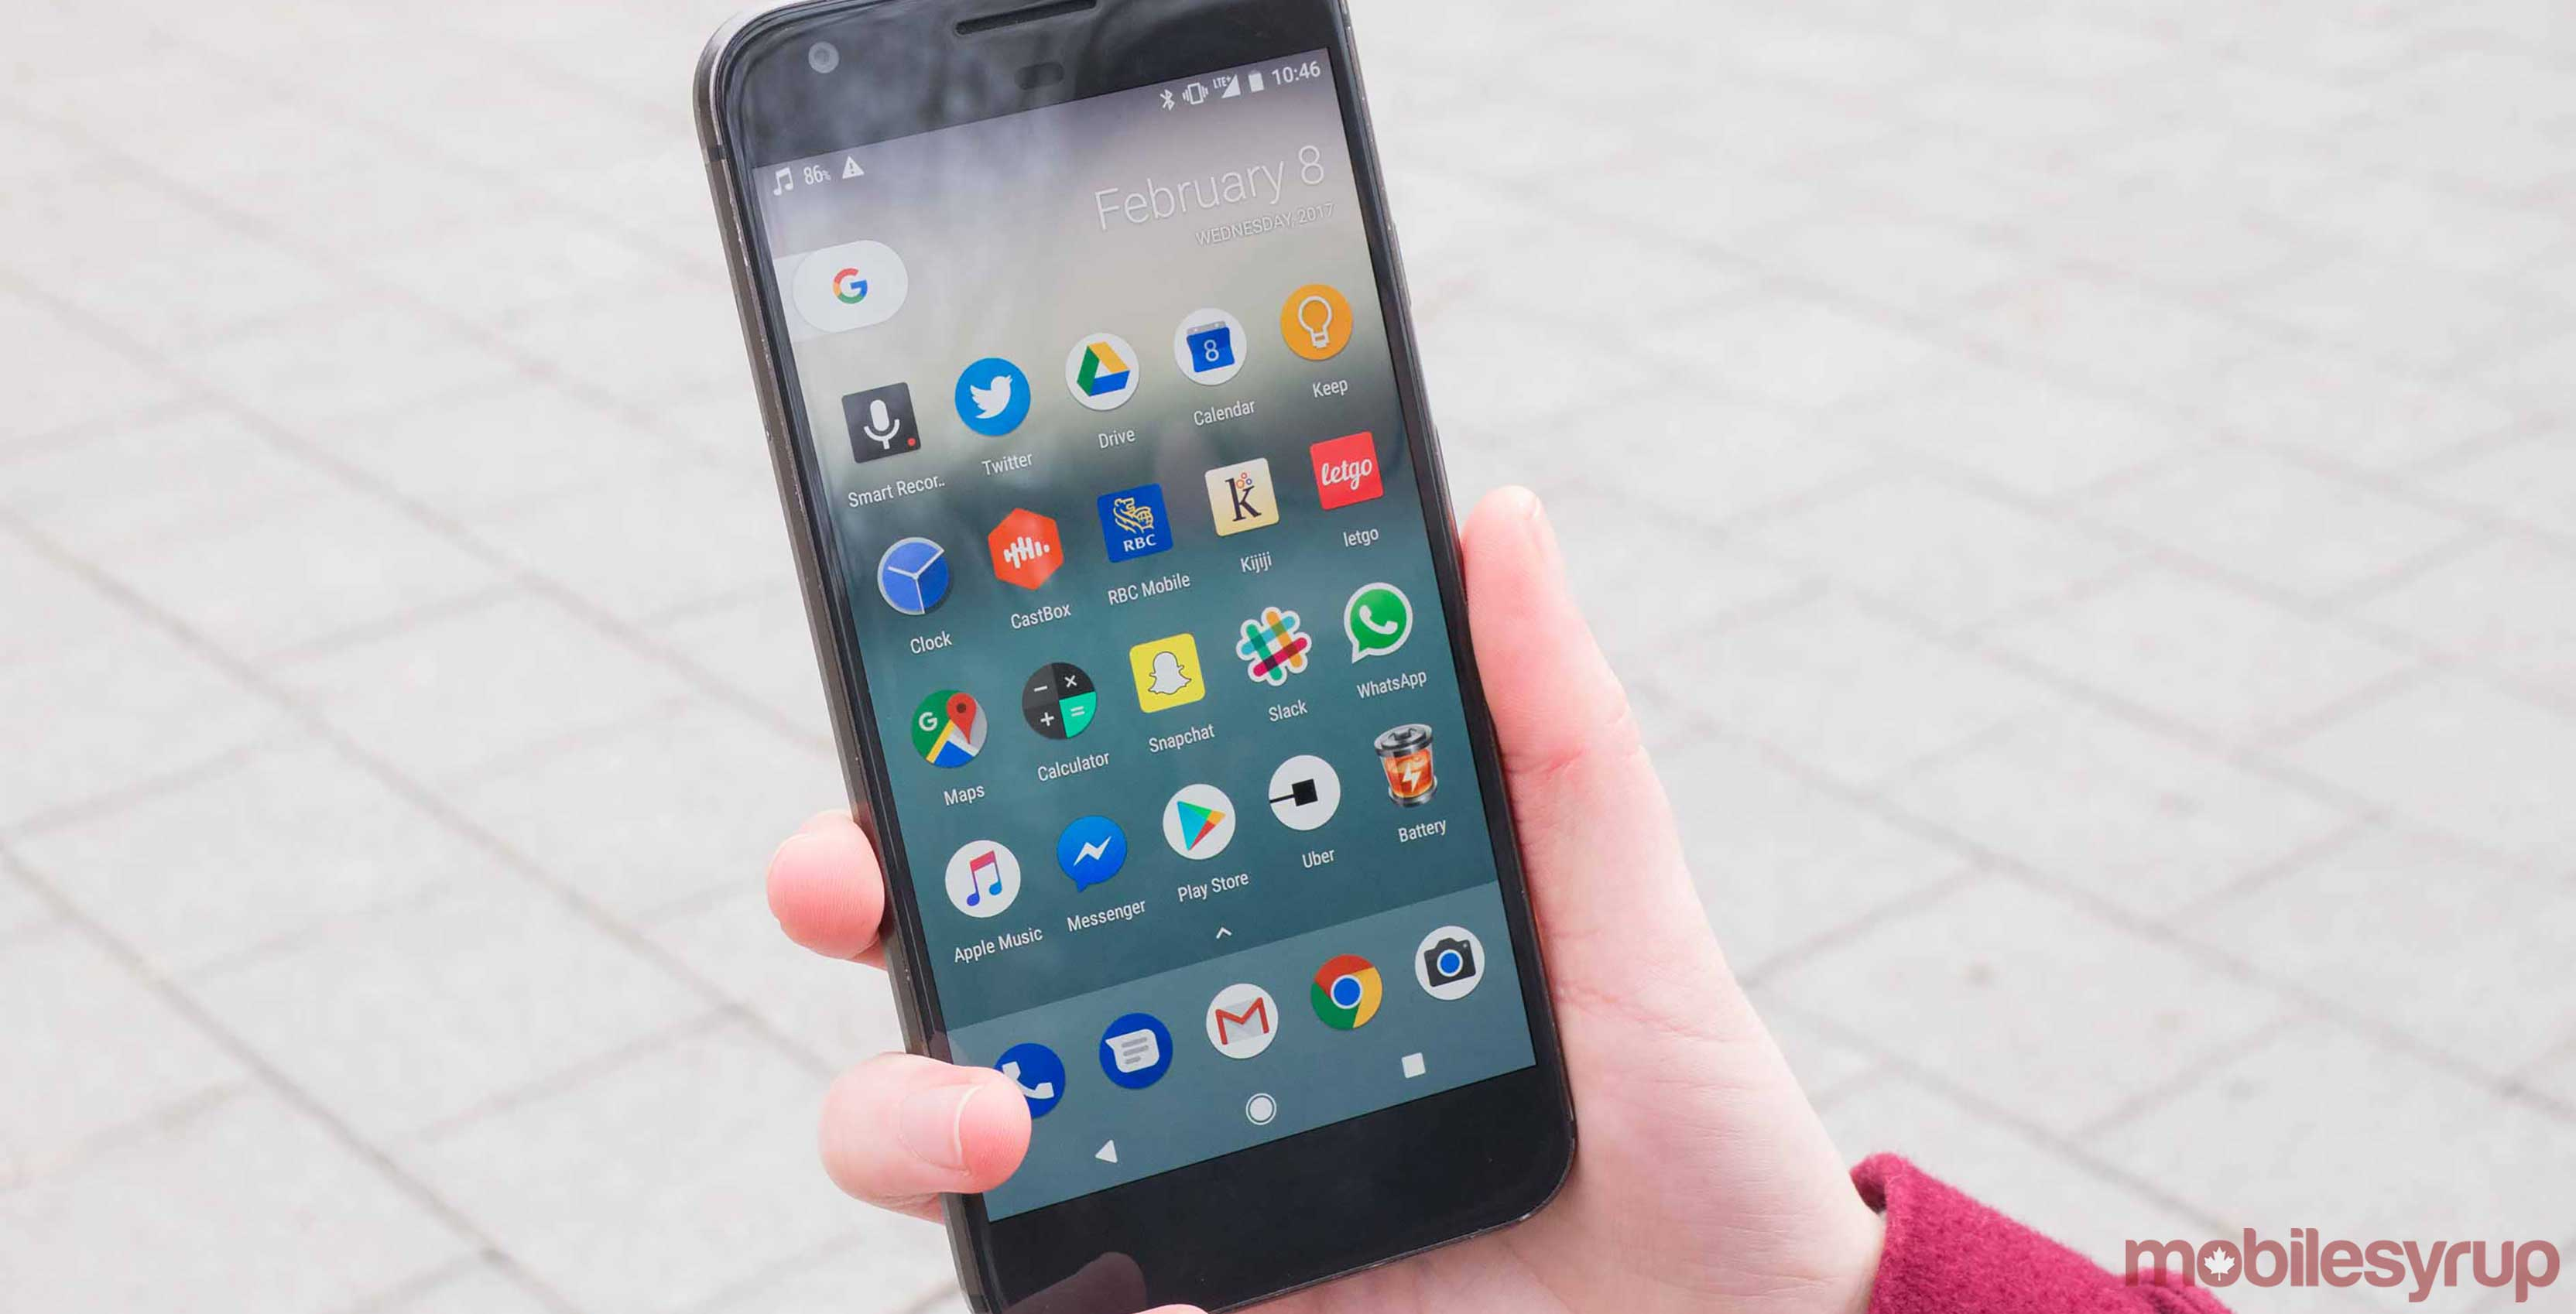 Google Pixel smartphone held in a hand